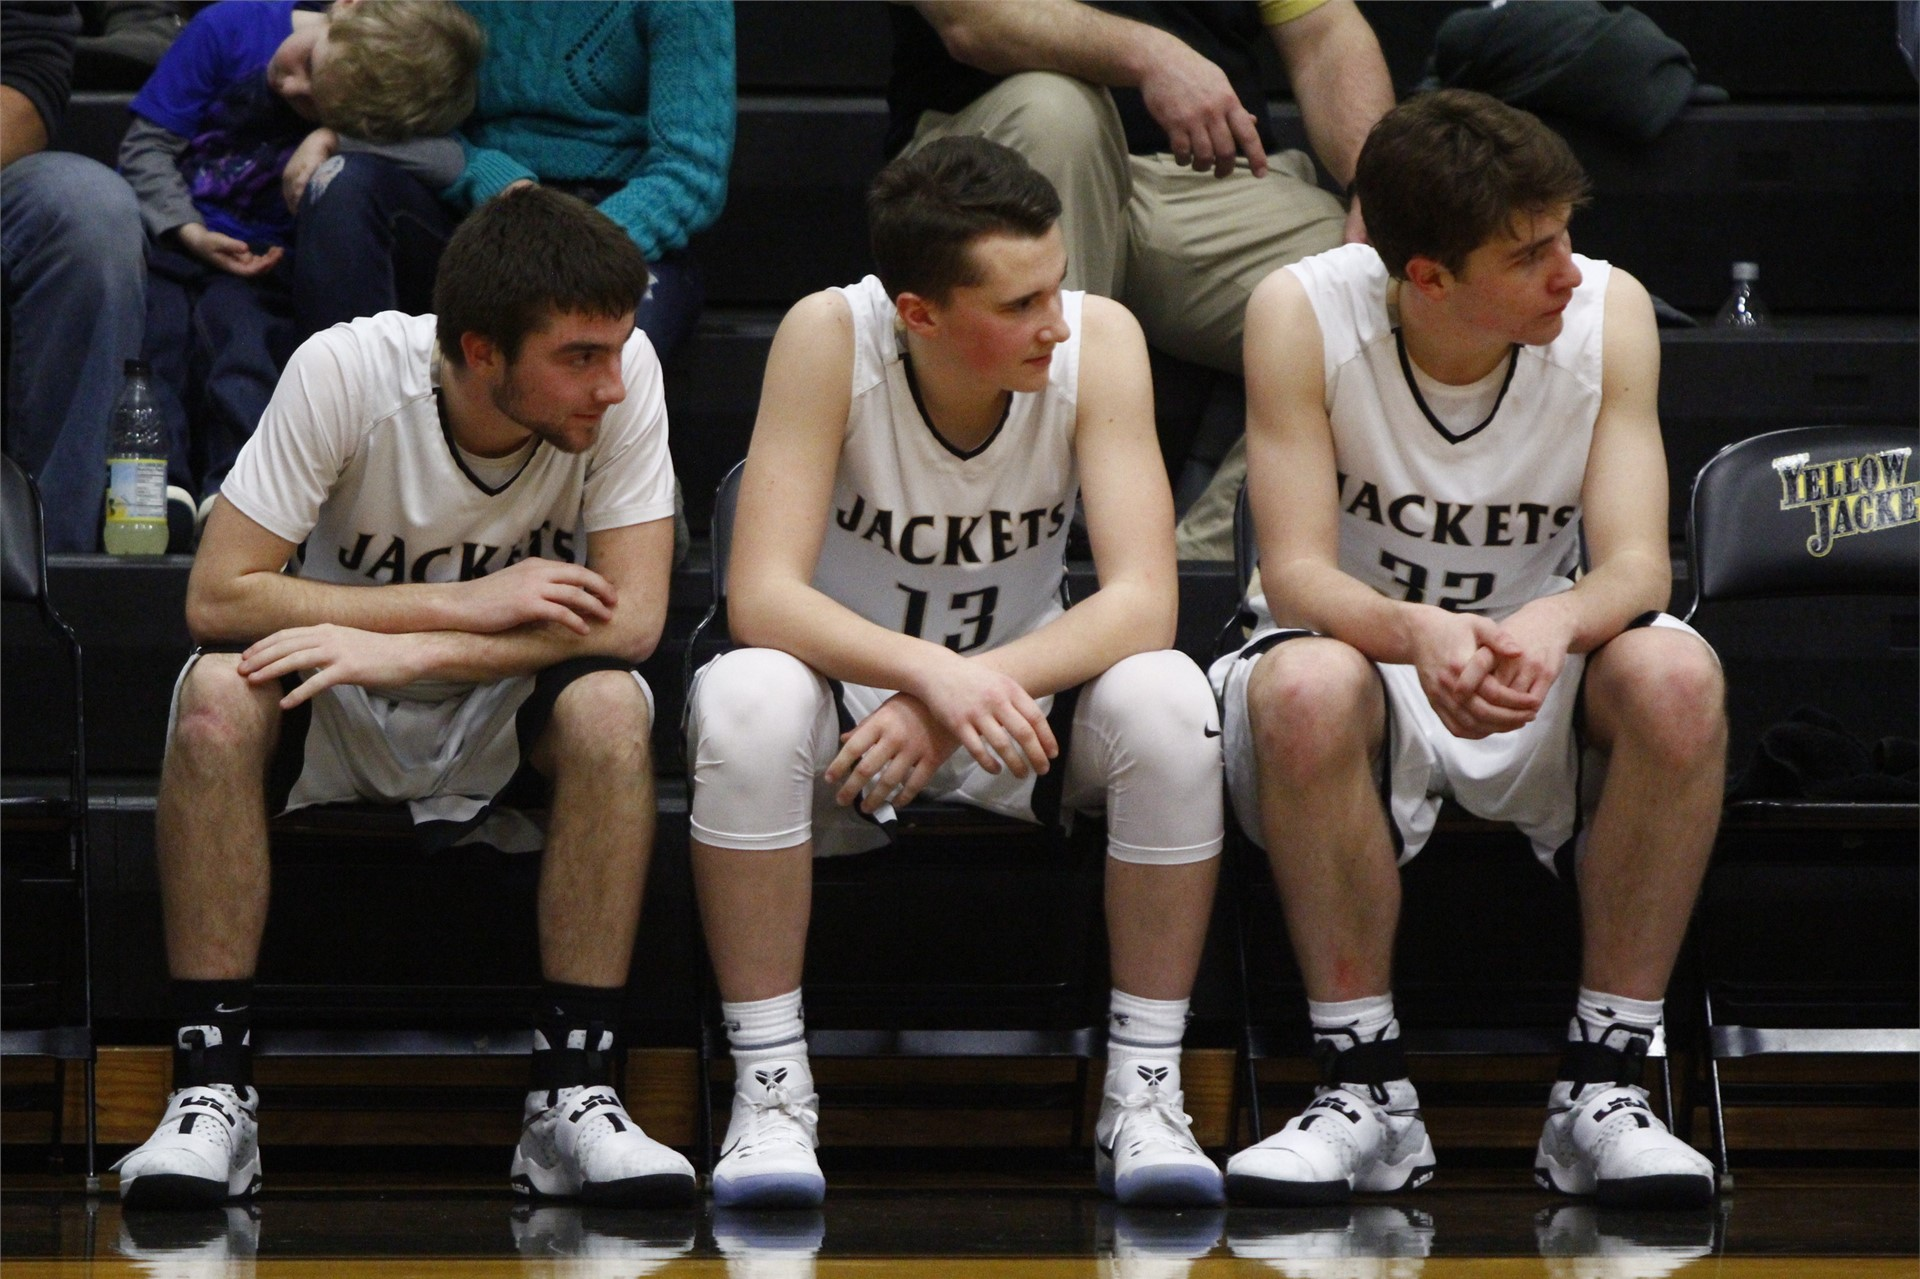 PHS basketball players sitting on the bench